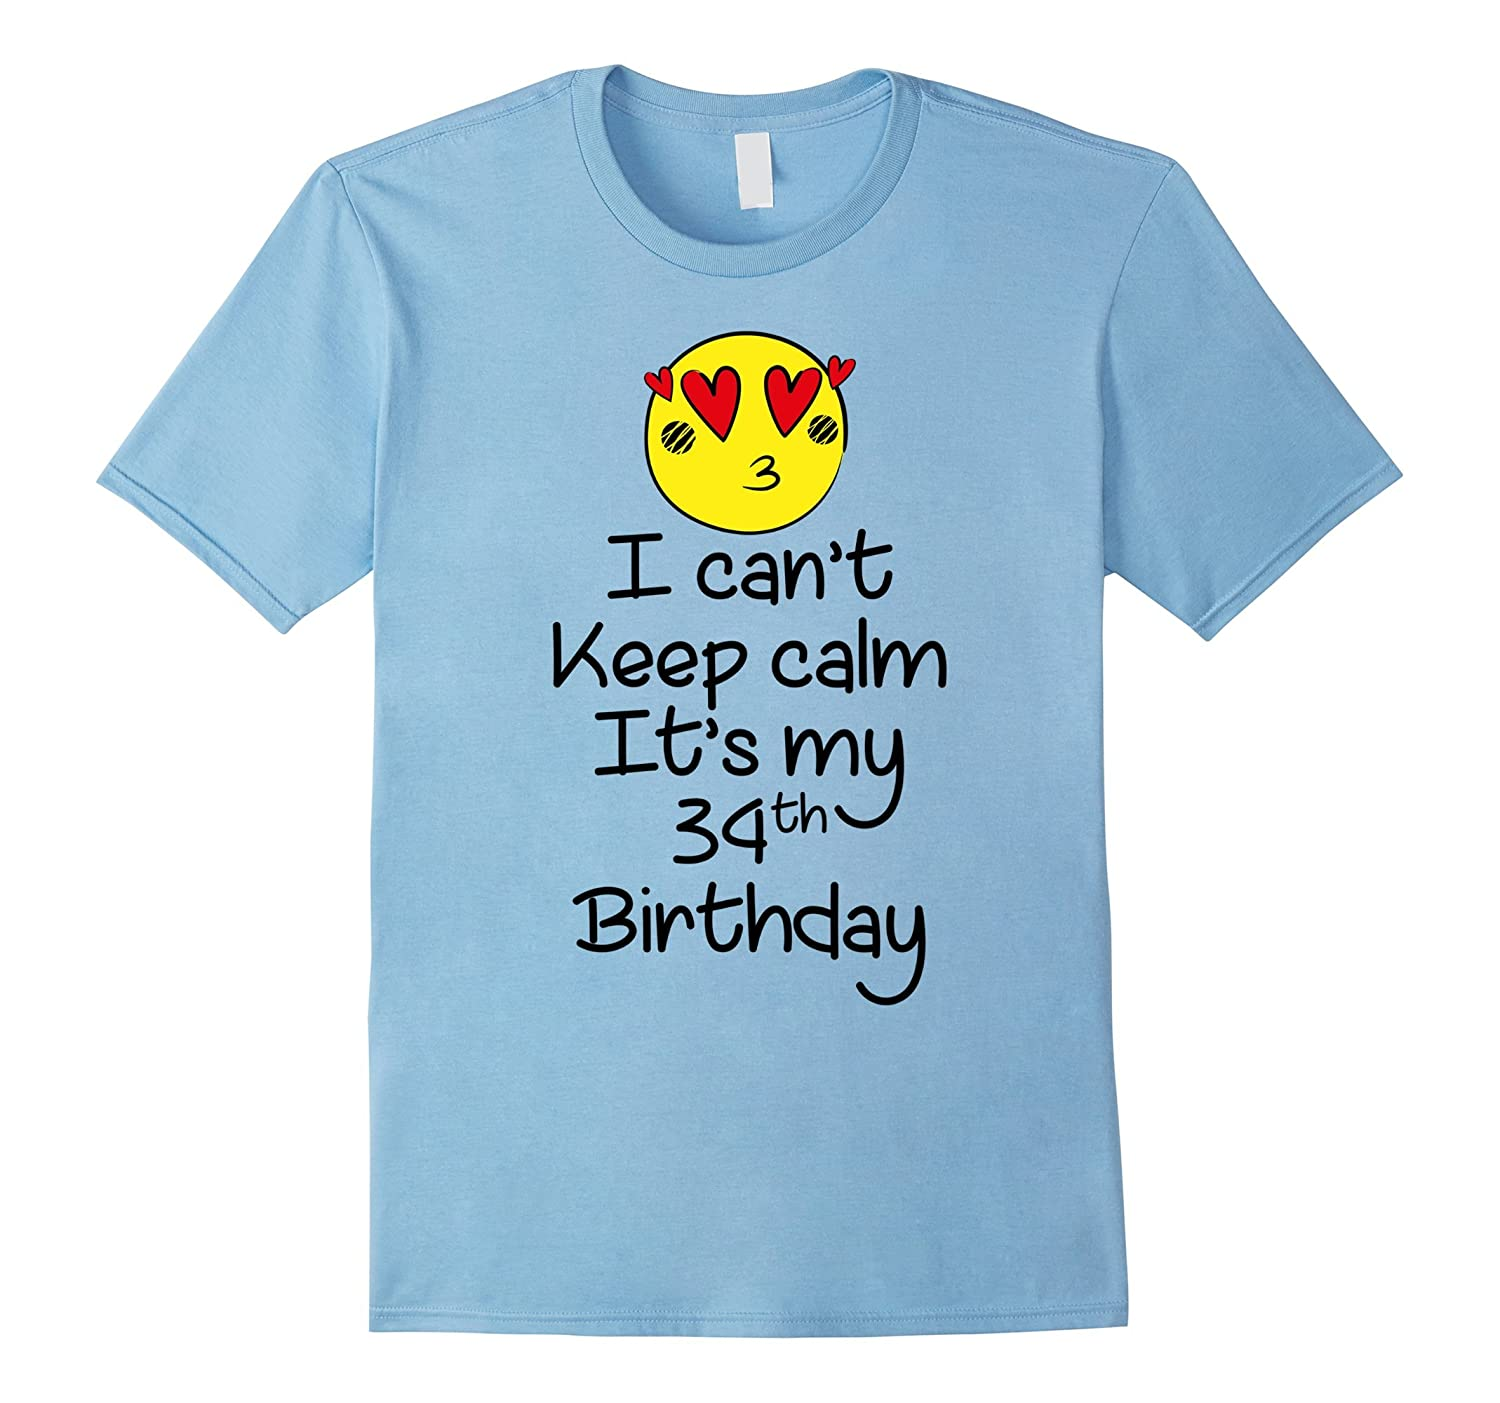 I CAN'T KEEP CALM IT'S MY 34 TH BIRTHDAY TSHIRT FOR LOVER-FL